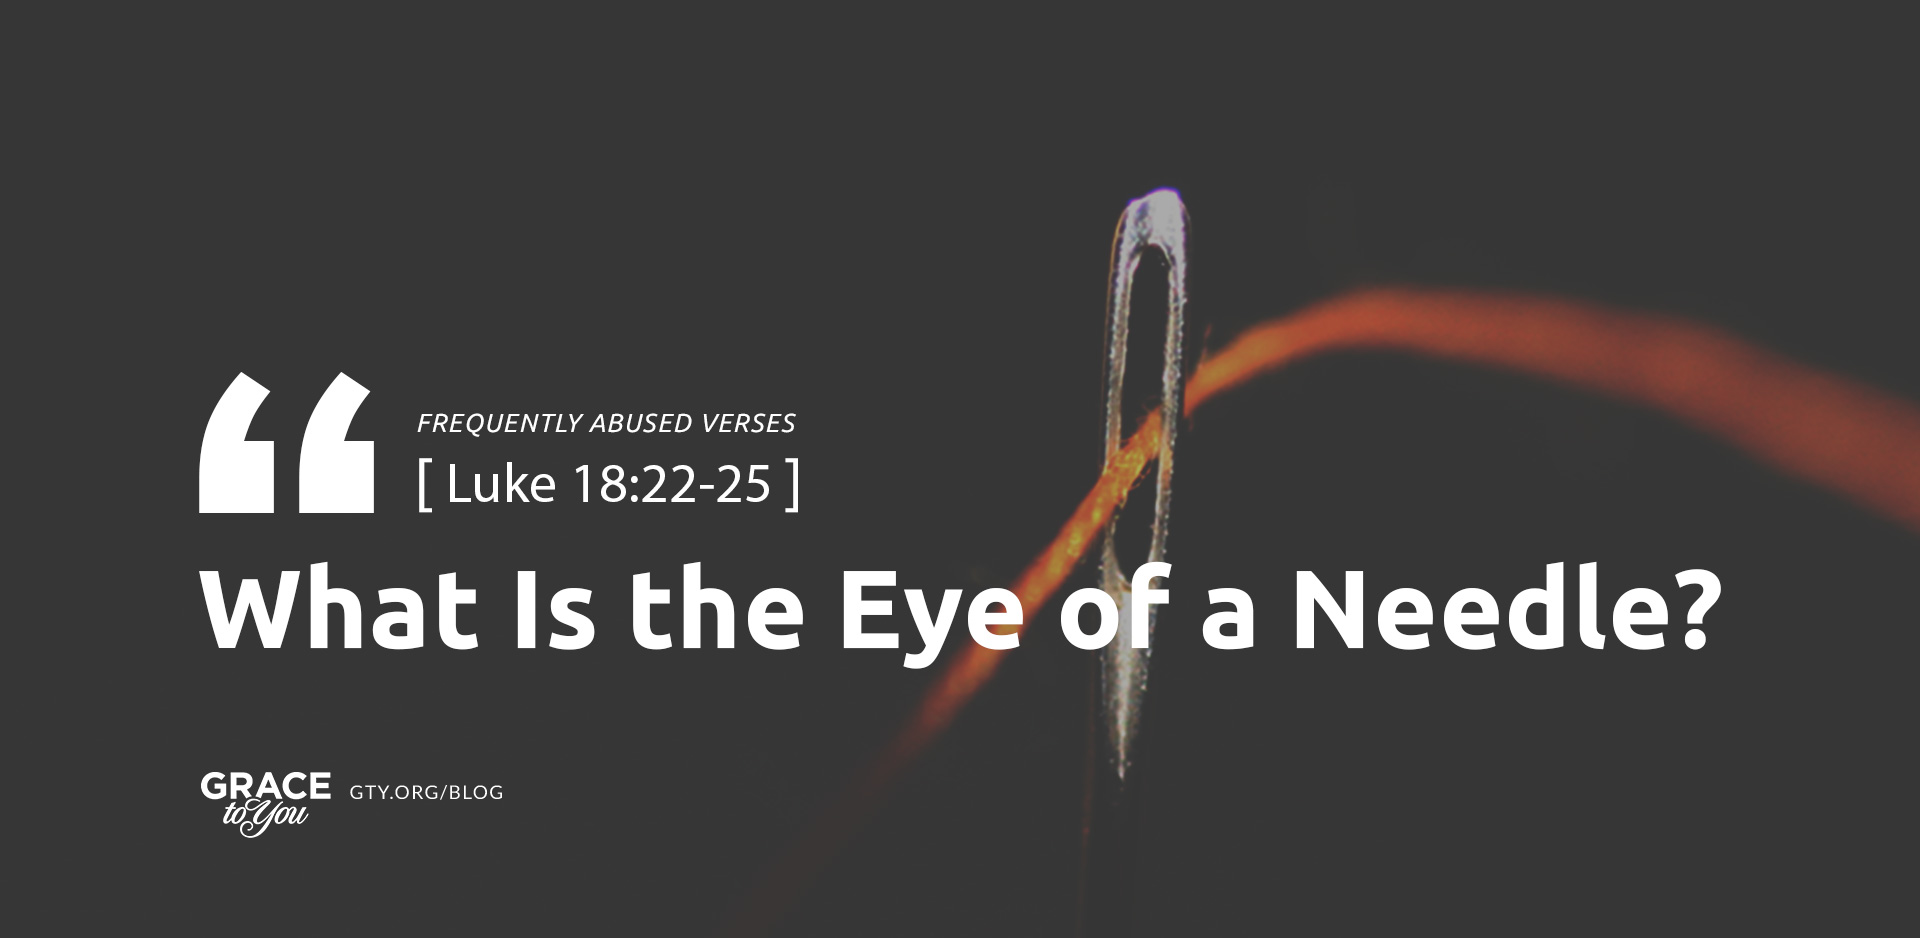 What Is the Eye of a Needle?